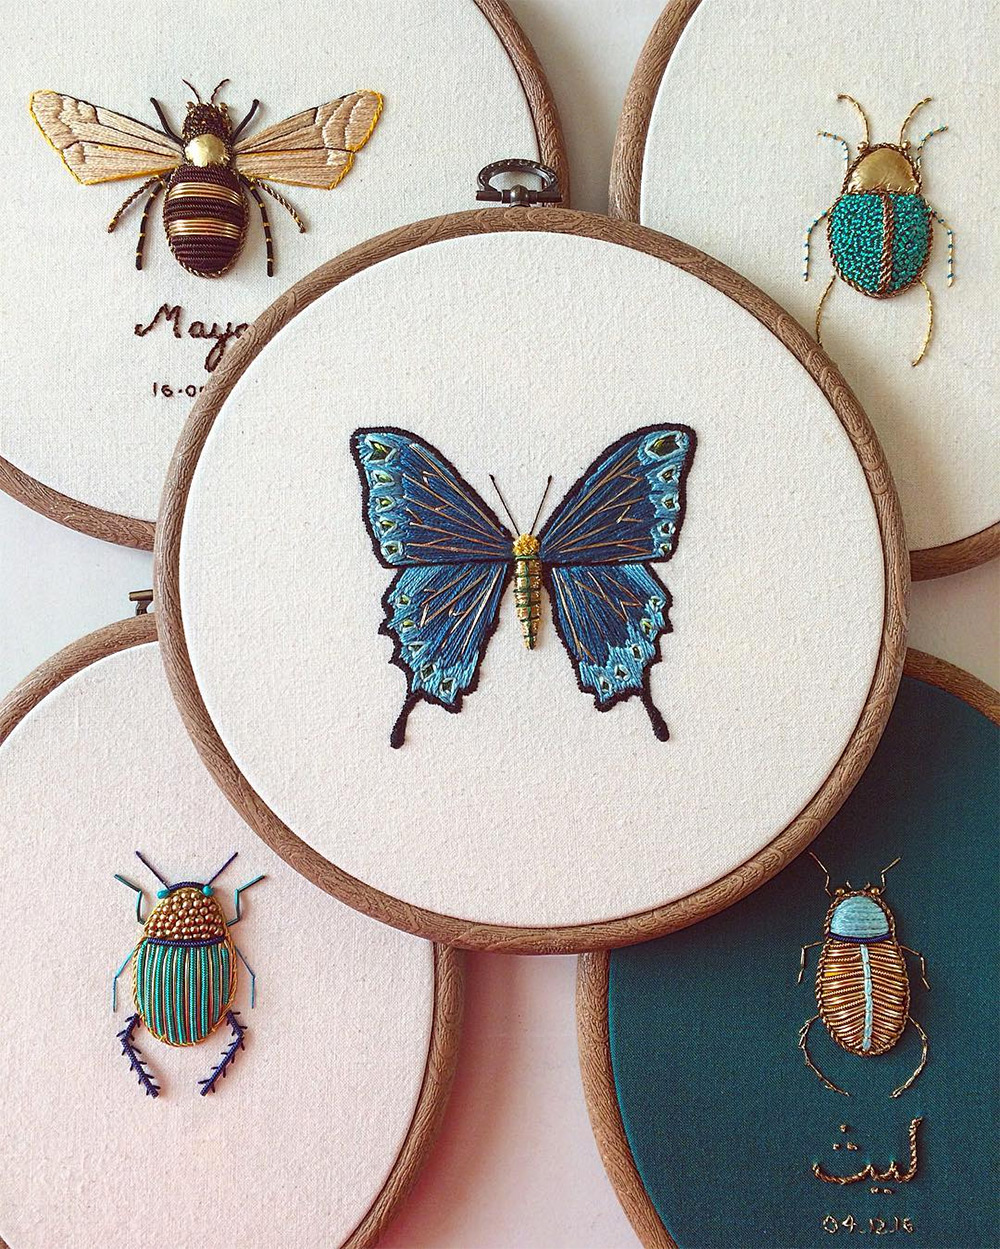 Ornate Insect Embroideries by Humayrah Bint Altaf Incorporate Antique Materials and Metallic Beads